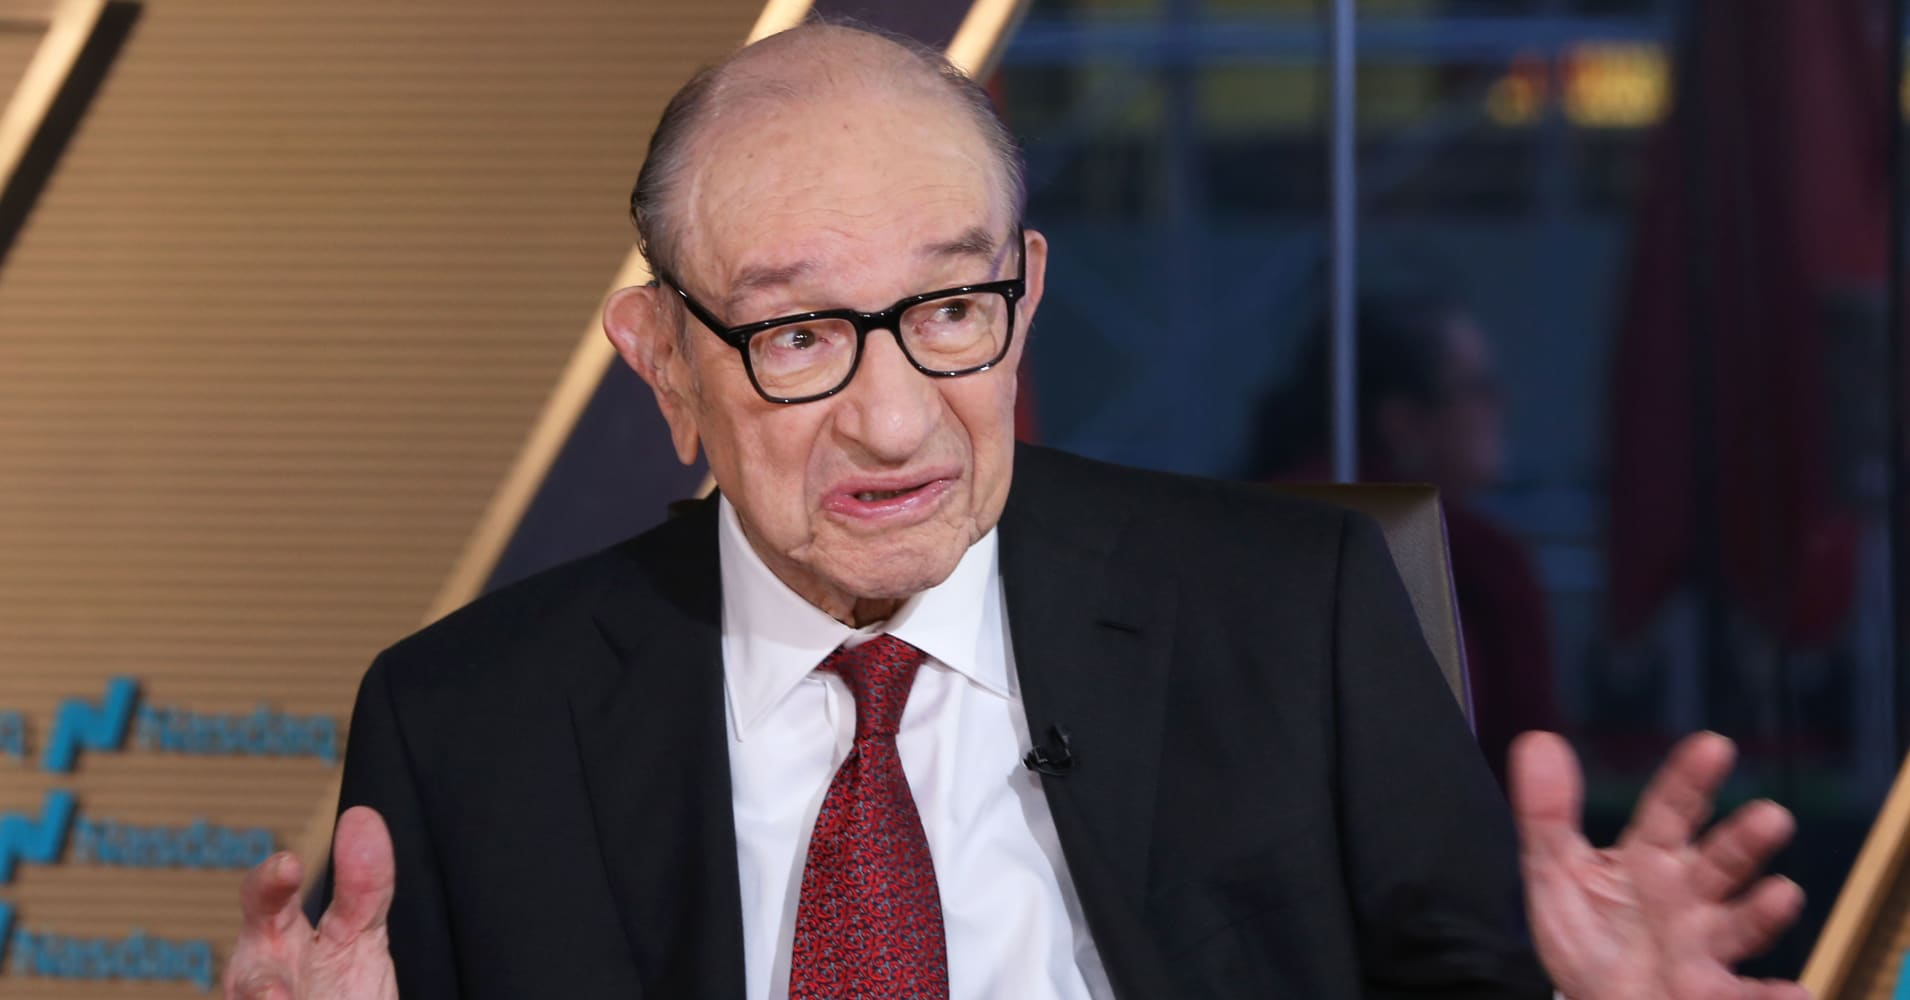 Greenspan to the Fed: 'Put earmuffs on,' Trump's criticism is nothing new for US presidents